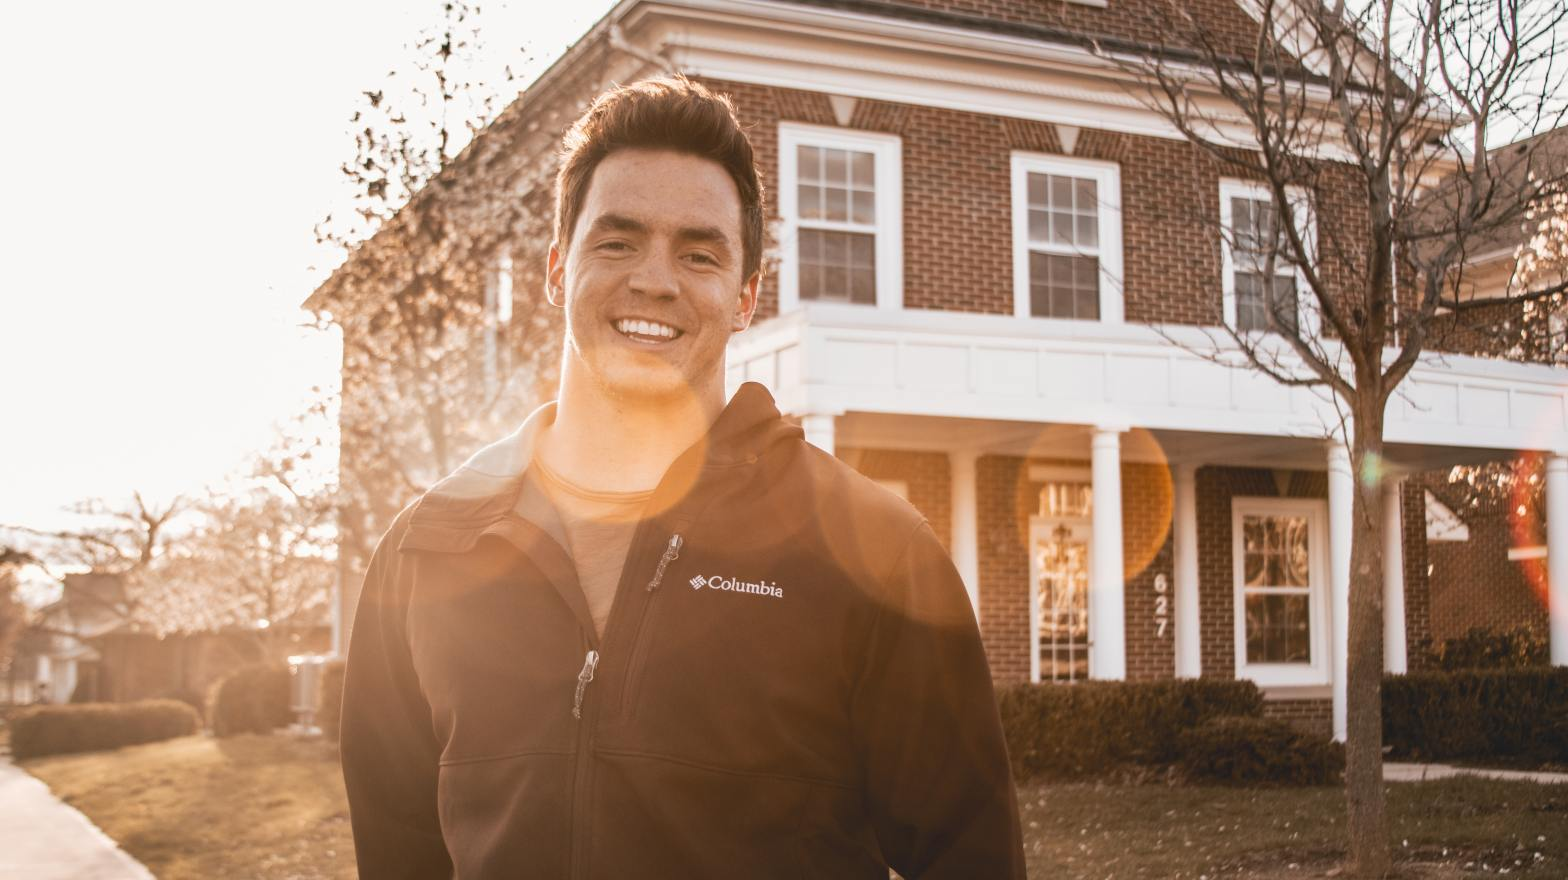 Discharged from bankruptcy and wanting a home loan? There is hope